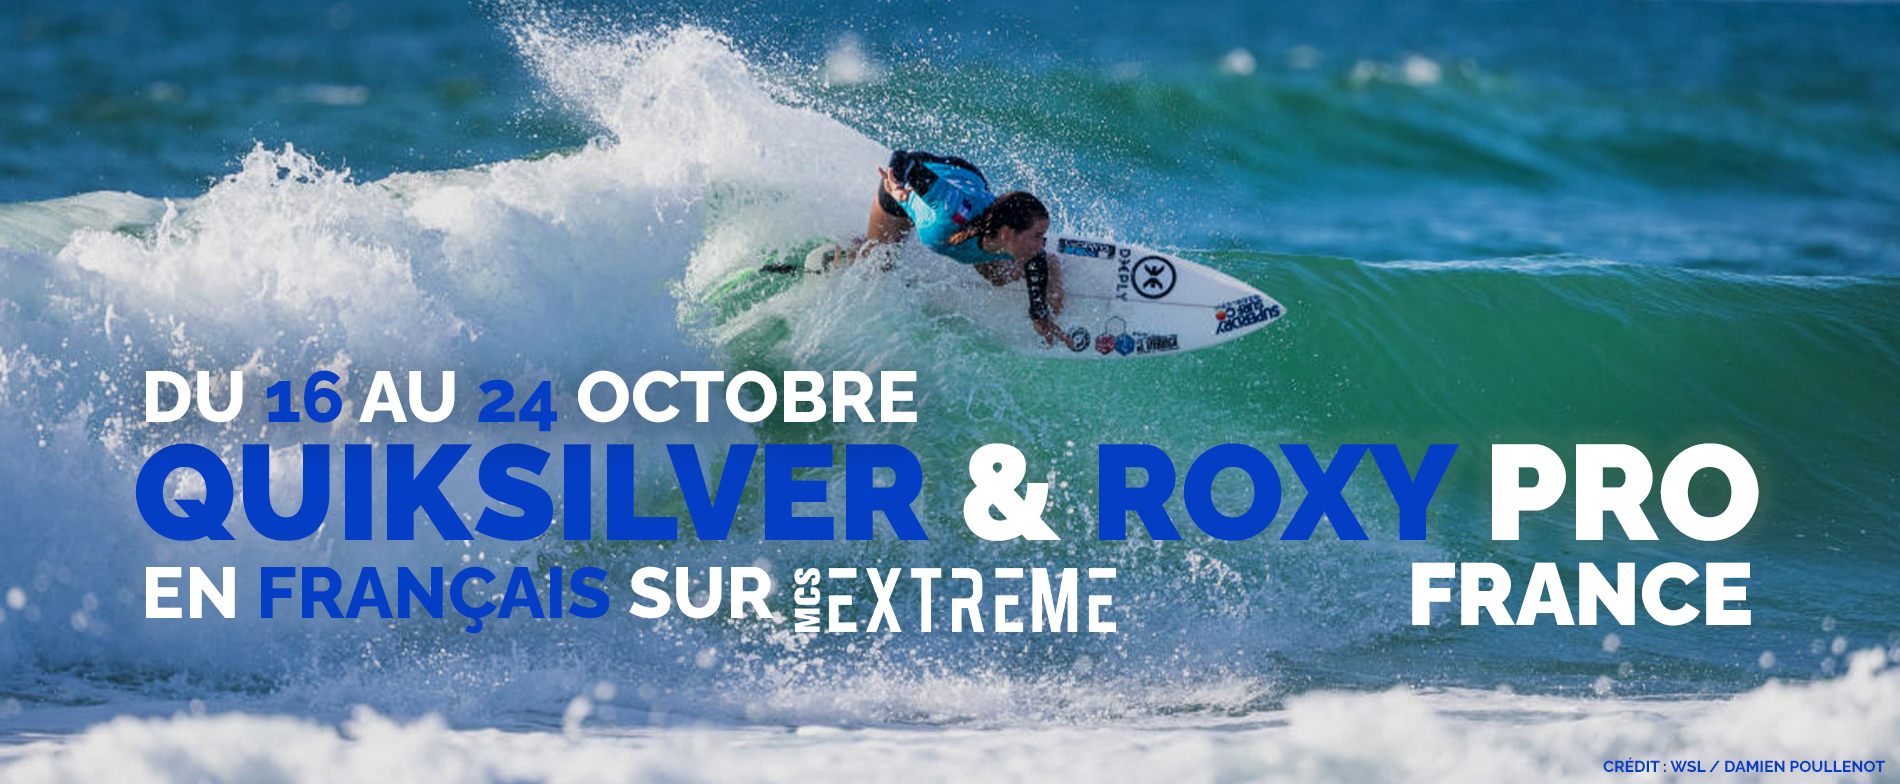 We dream of WSL events commented in French, MCS Extrême did it